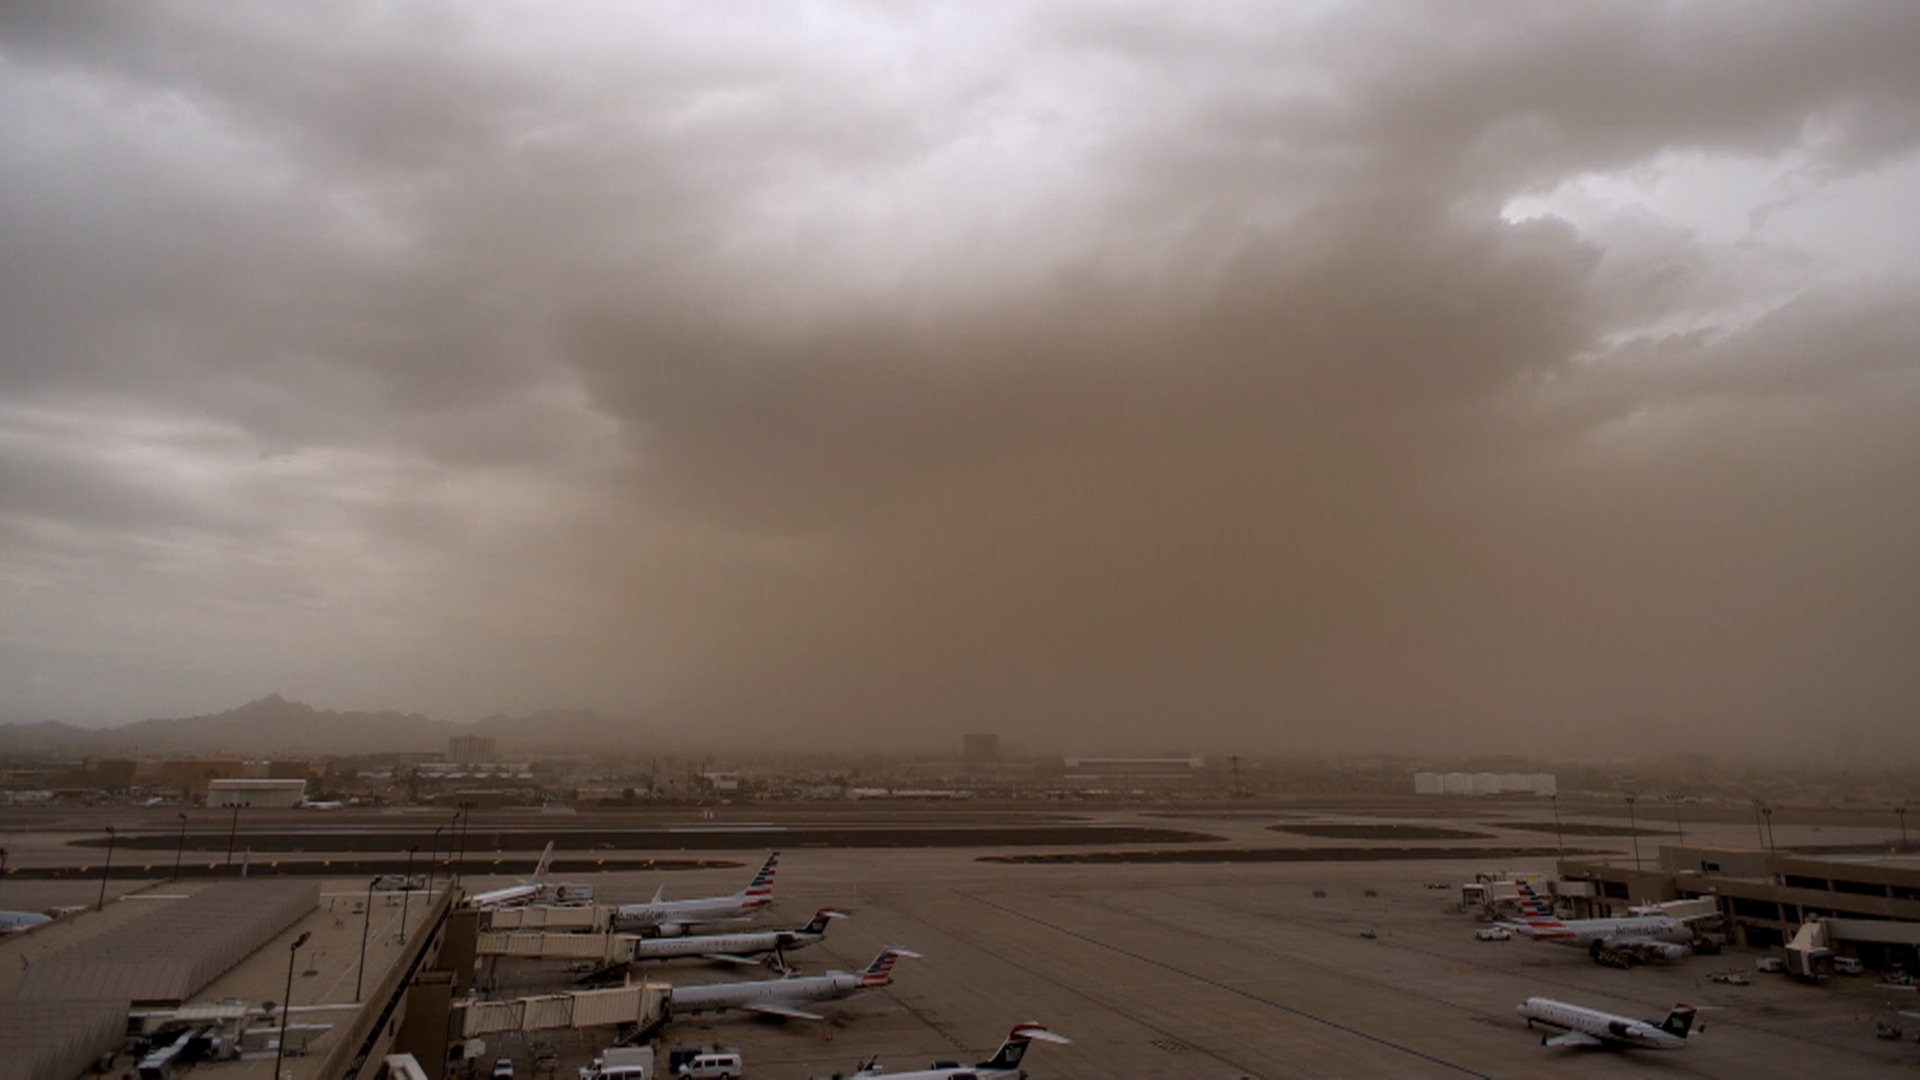 Watch Haboob windstorm blankets Phoenix with choking red dust 1920x1080